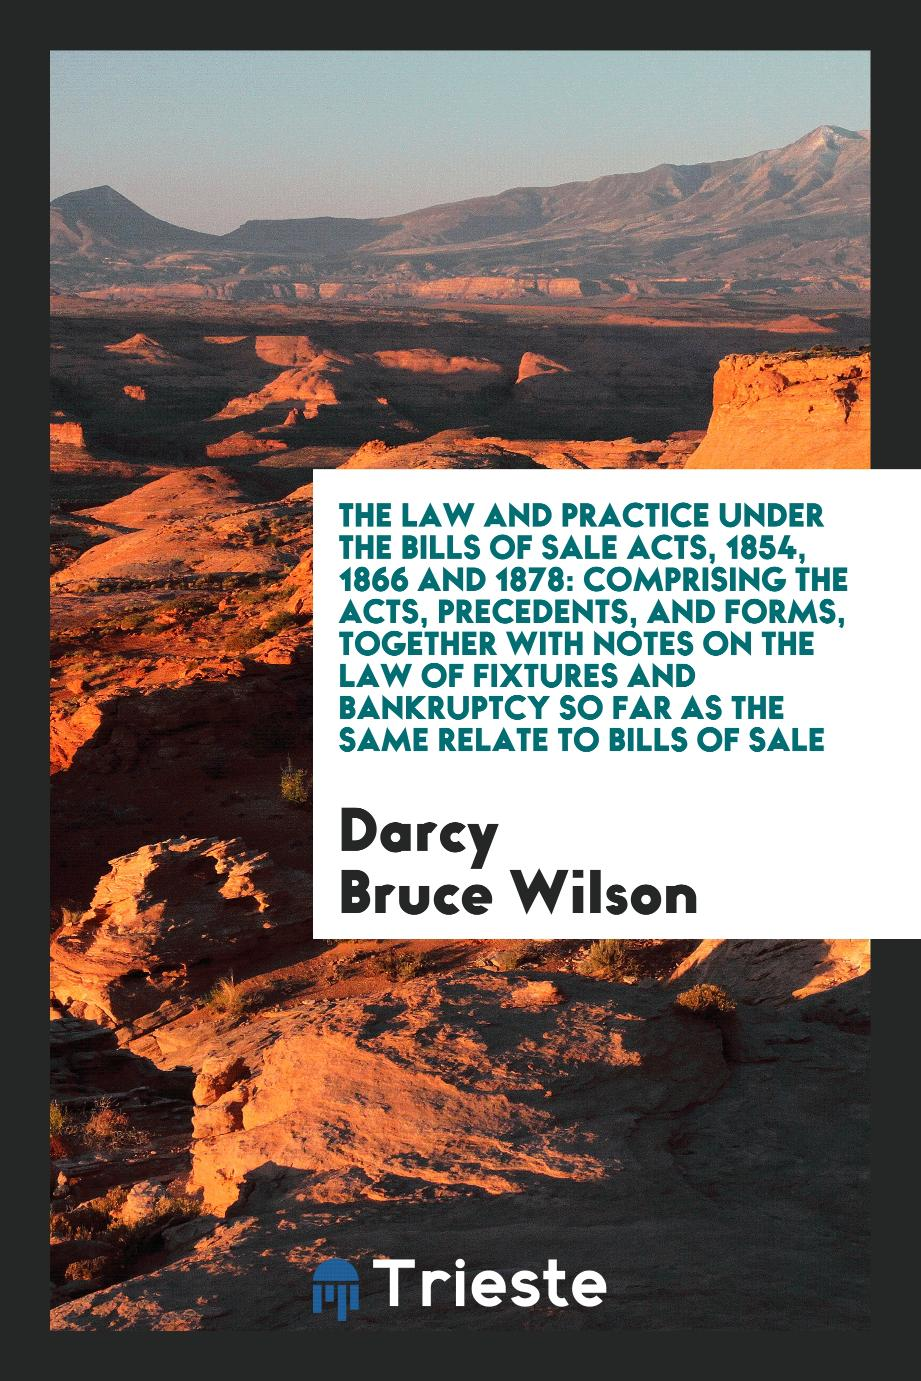 The Law and Practice under the Bills of Sale Acts, 1854, 1866 and 1878: Comprising the Acts, Precedents, and Forms, Together with Notes on the Law of Fixtures and Bankruptcy so Far as the Same Relate to Bills of Sale